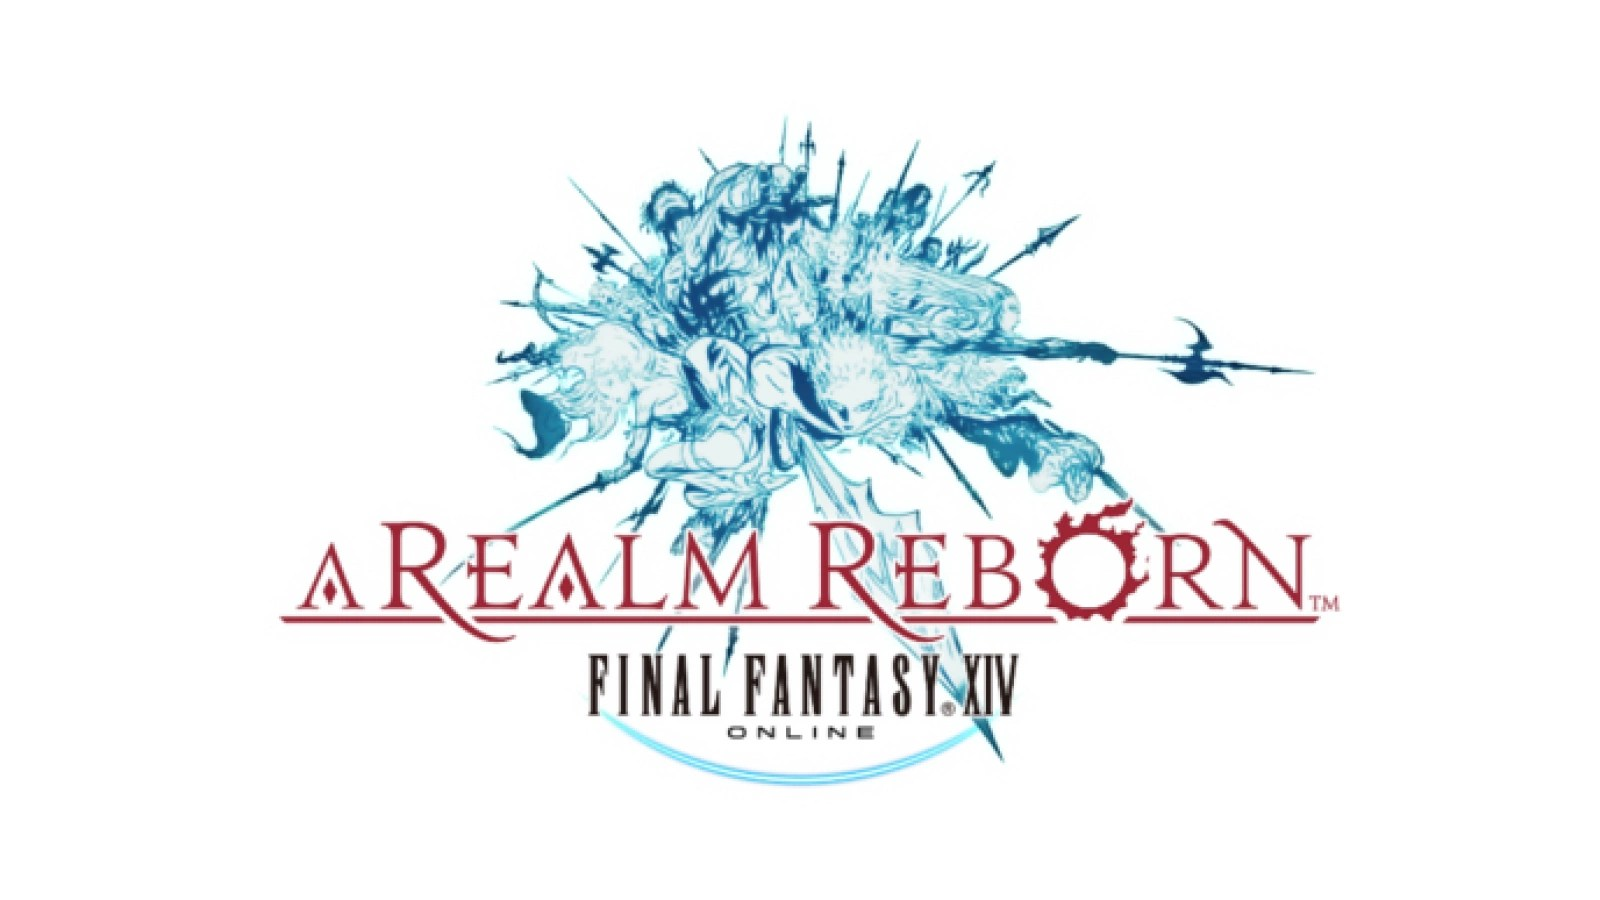 Final Fantasy 14: The website is currently unavailable